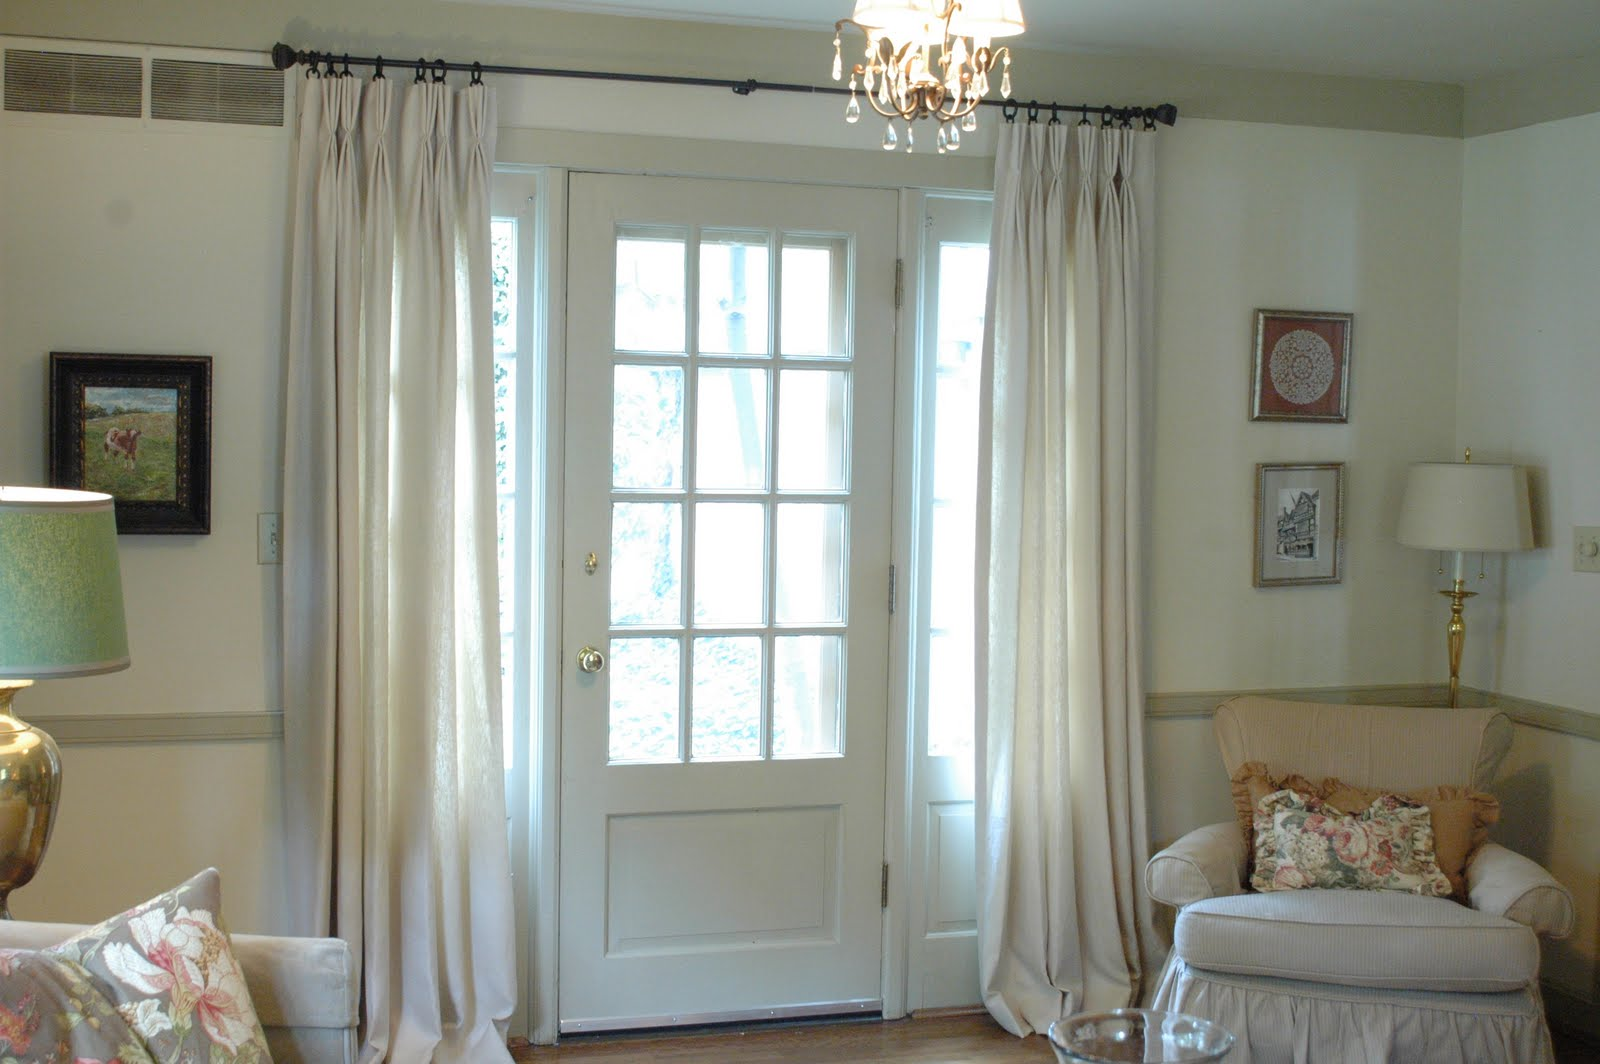 Glass front door window treatments - Drapes On Doors